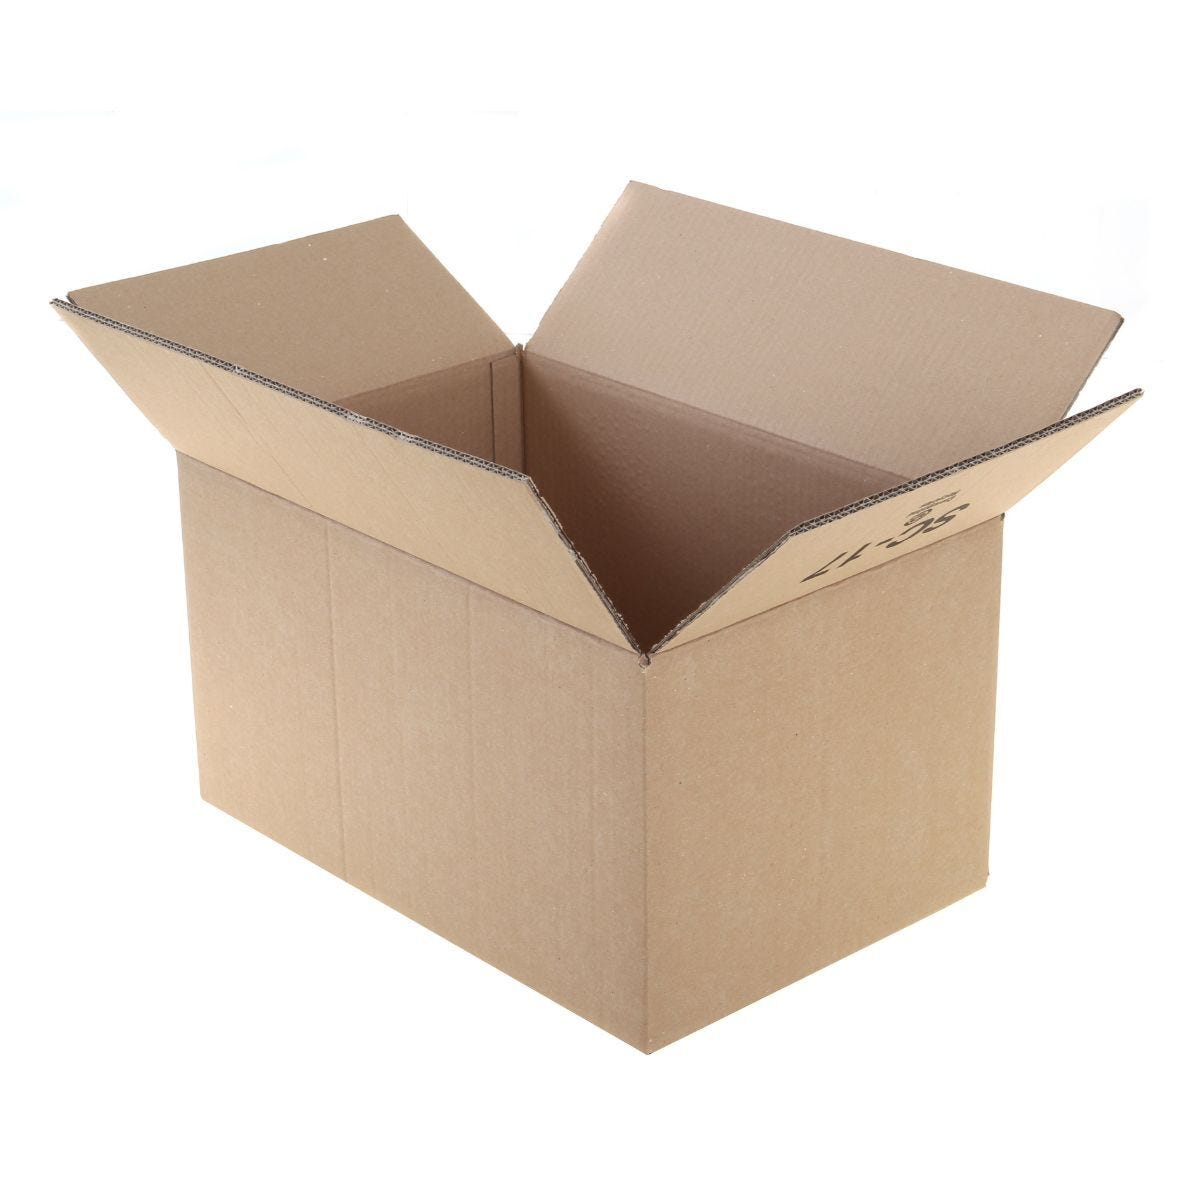 Double Walled Cartons Box 457x305x254mm Pack of 15